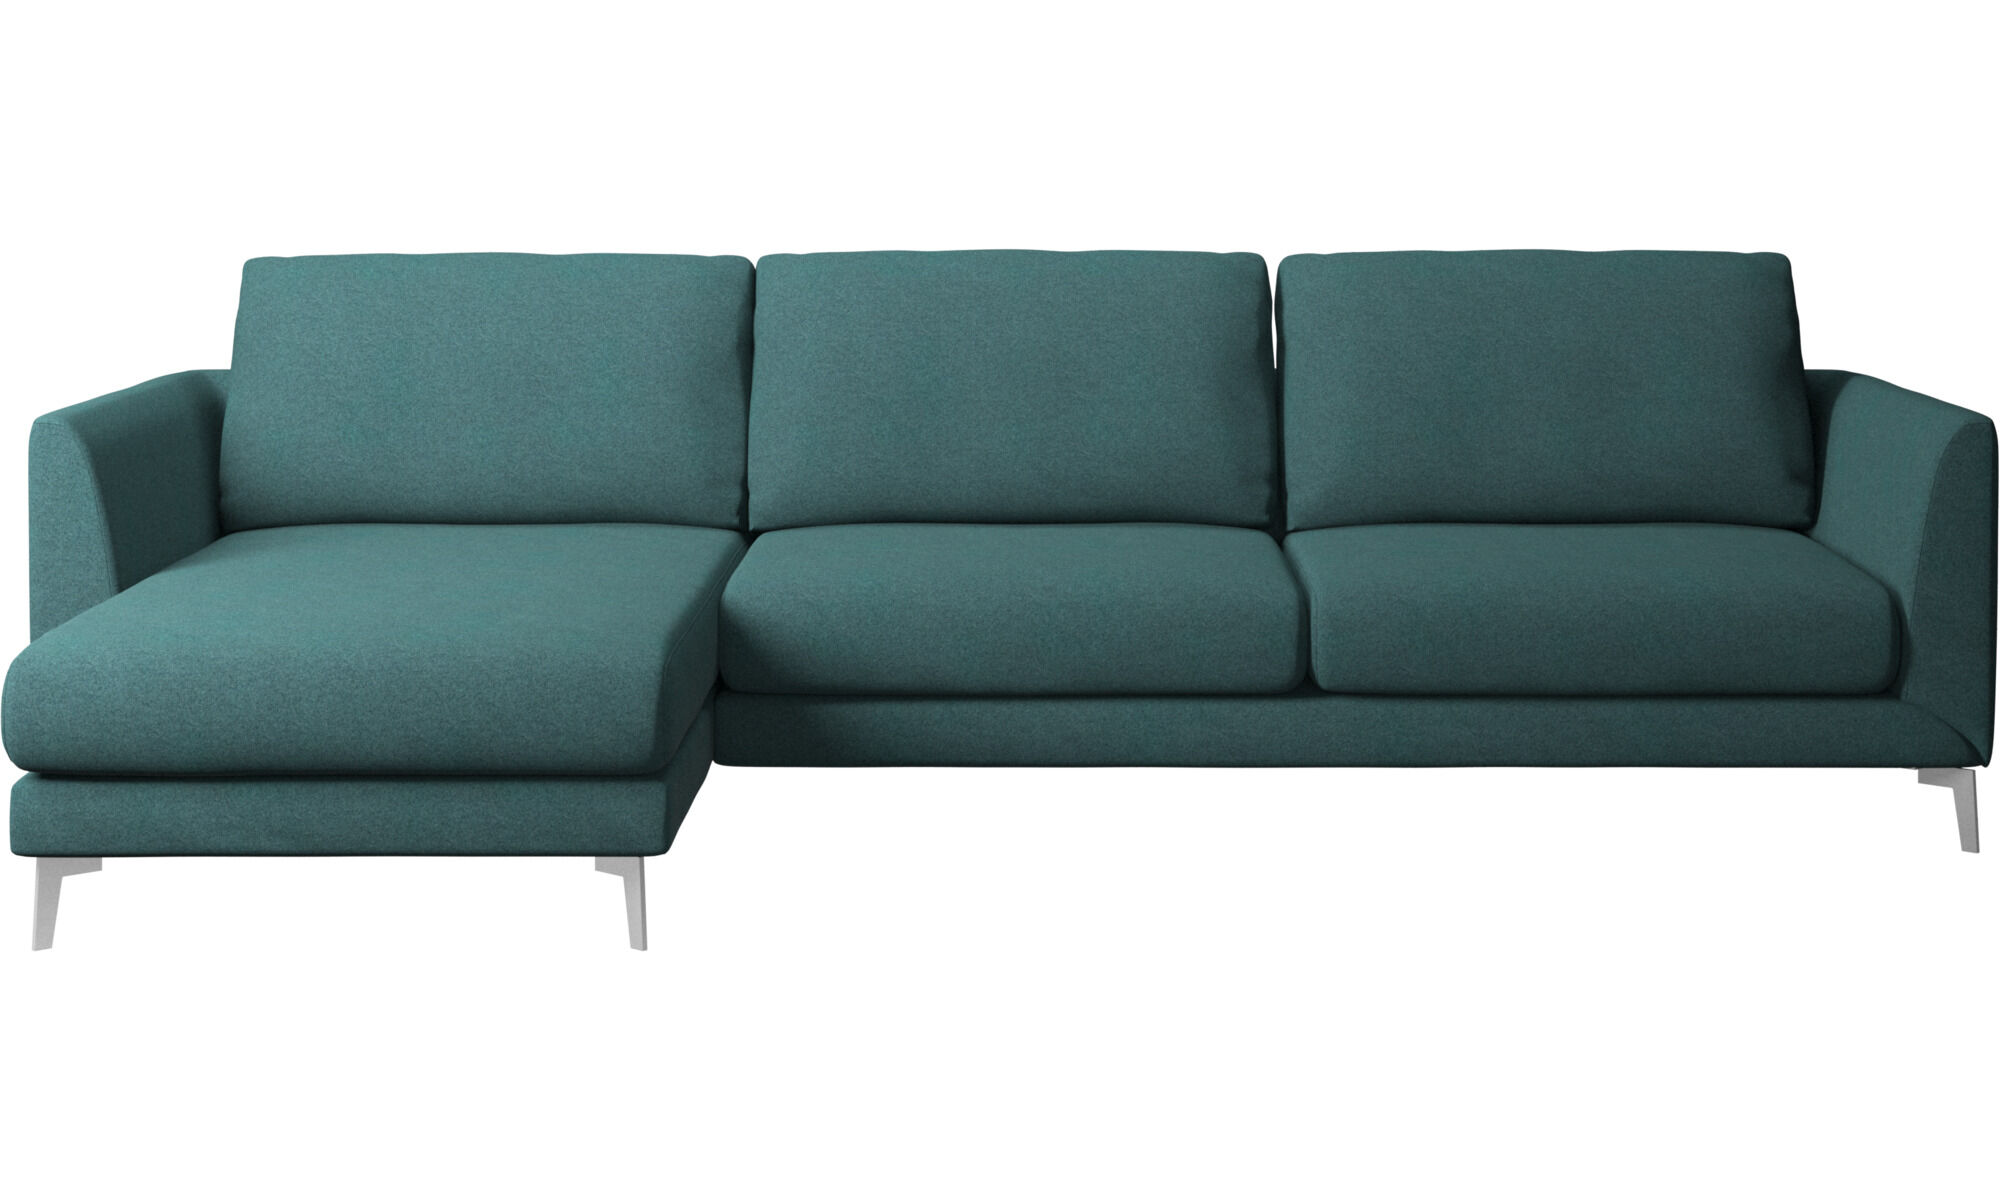 modern chaise longue sofas quality from boconcept rh boconcept com chase lounges outdoors chase lounge sopranos